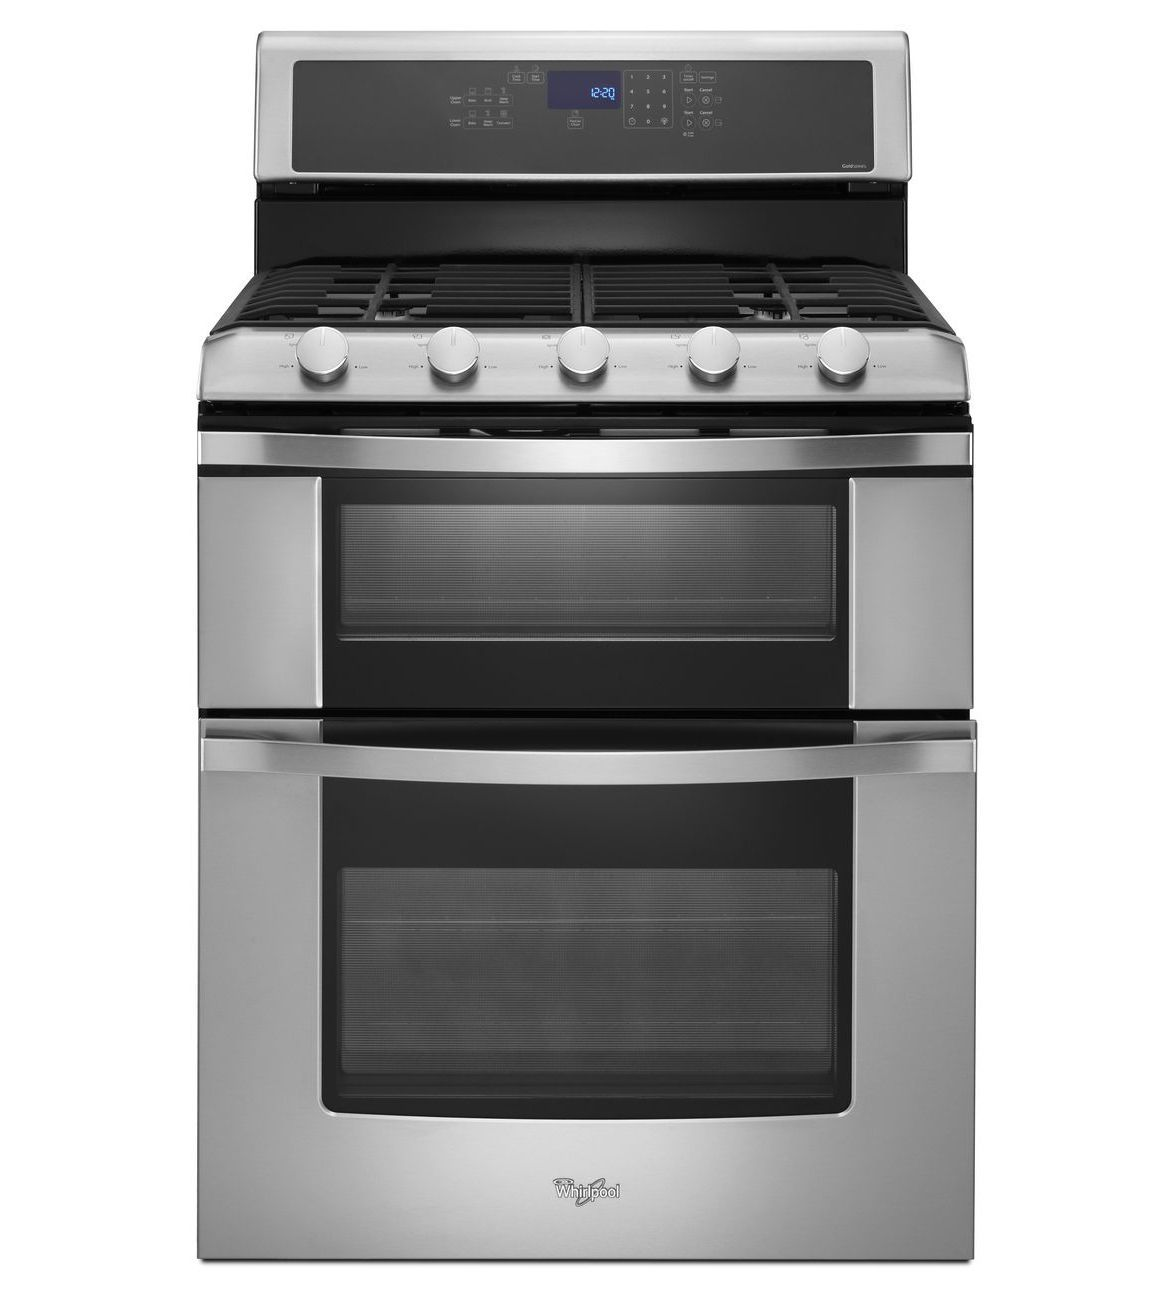 their top of the line gas range w double oven i 39 m going to compare other brands first. Black Bedroom Furniture Sets. Home Design Ideas